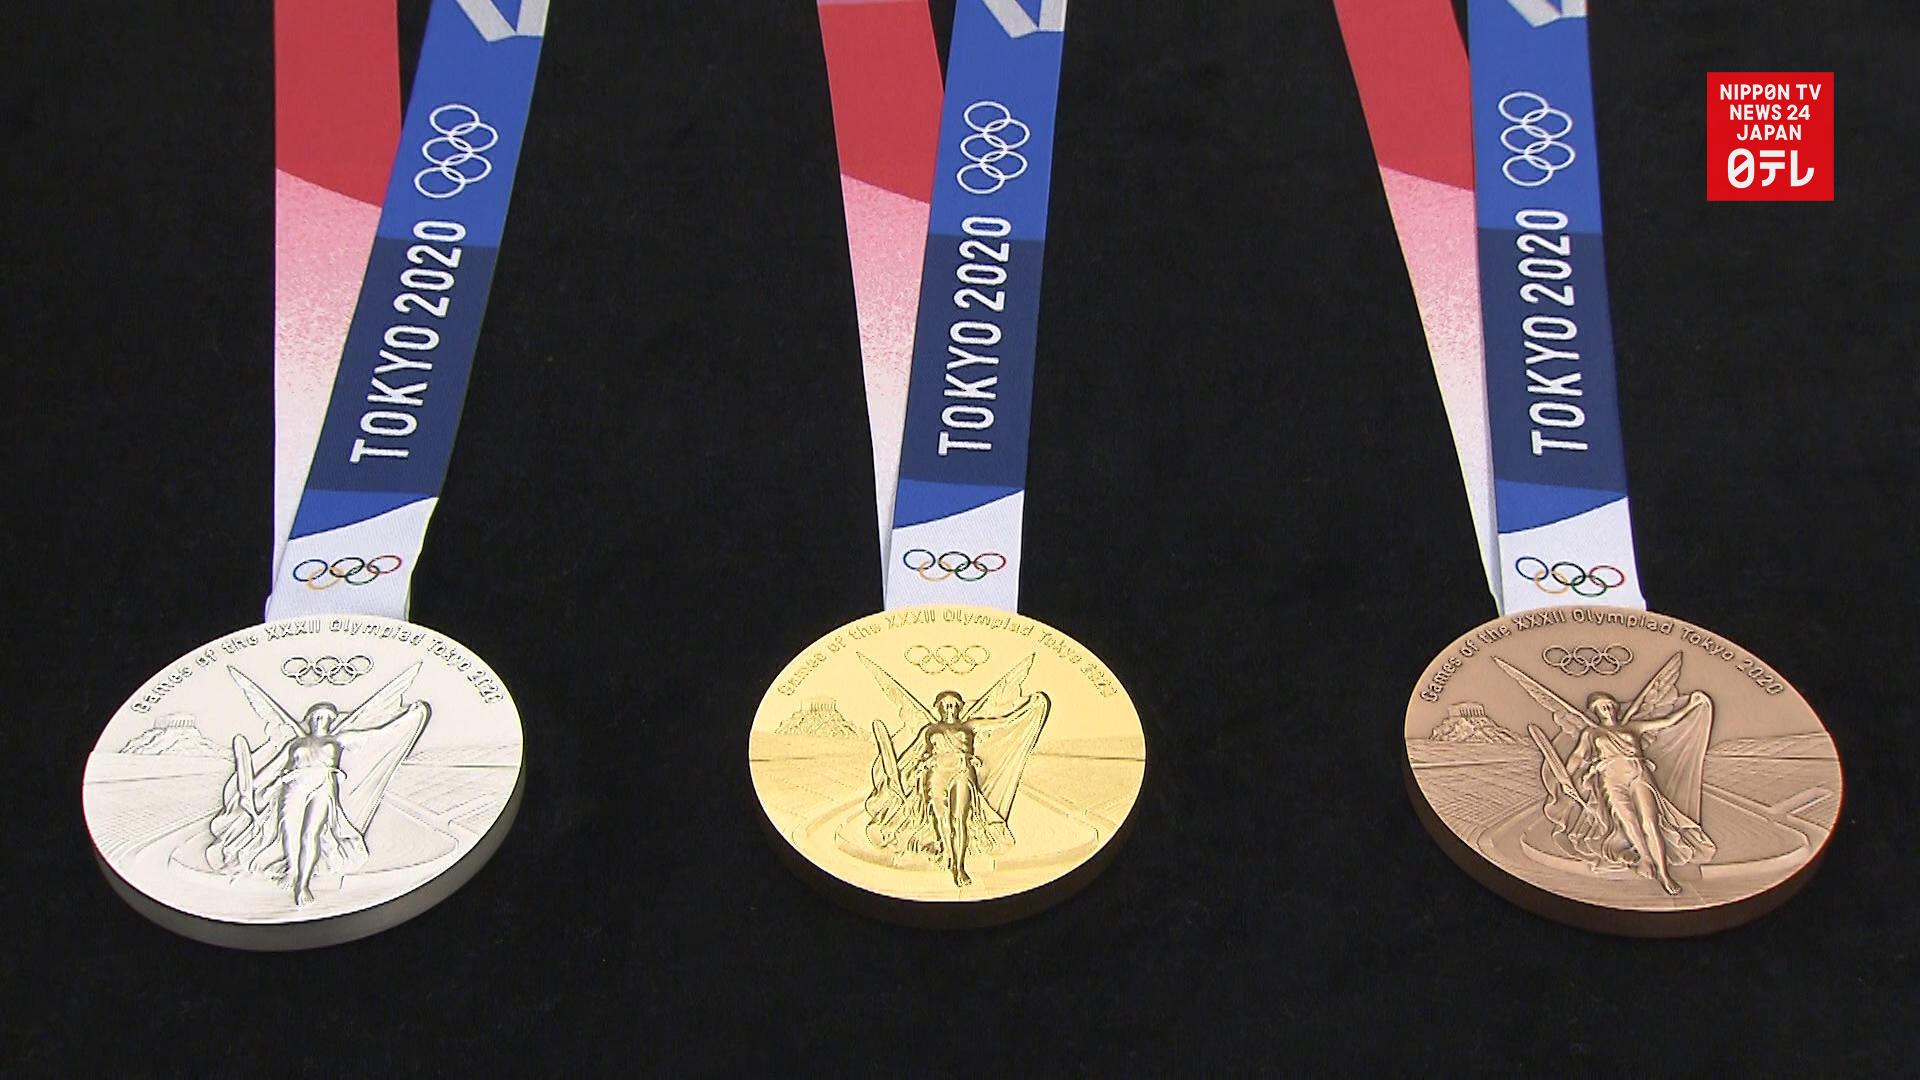 Tokyo Olympic medals, countdown clock unveiled